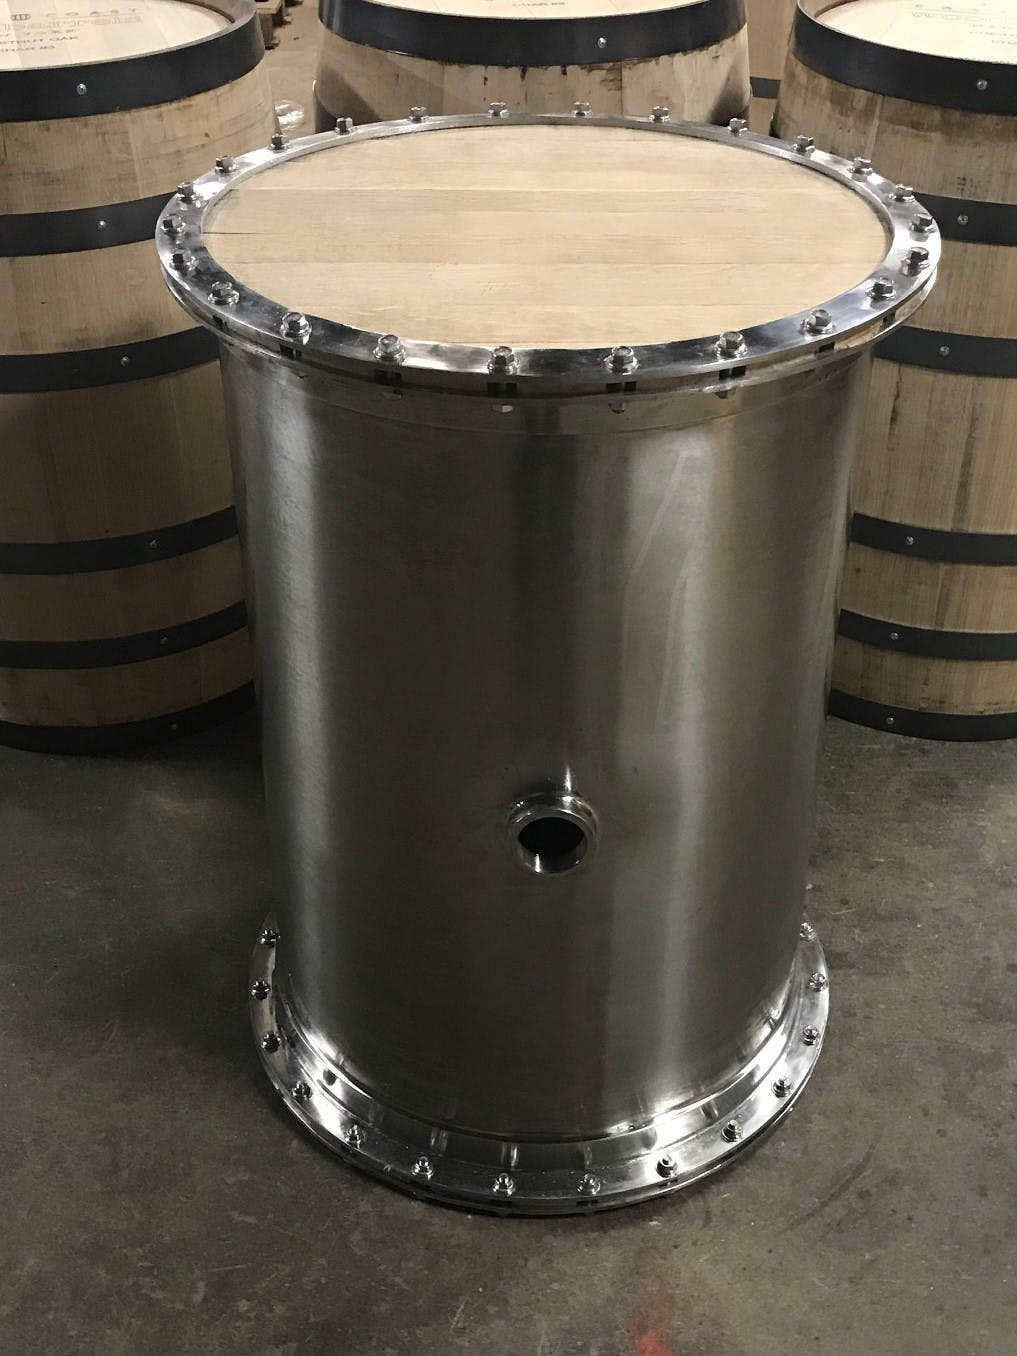 Titan 53 Gallon Whiskey Barrel - sold by Titan Barrel Works